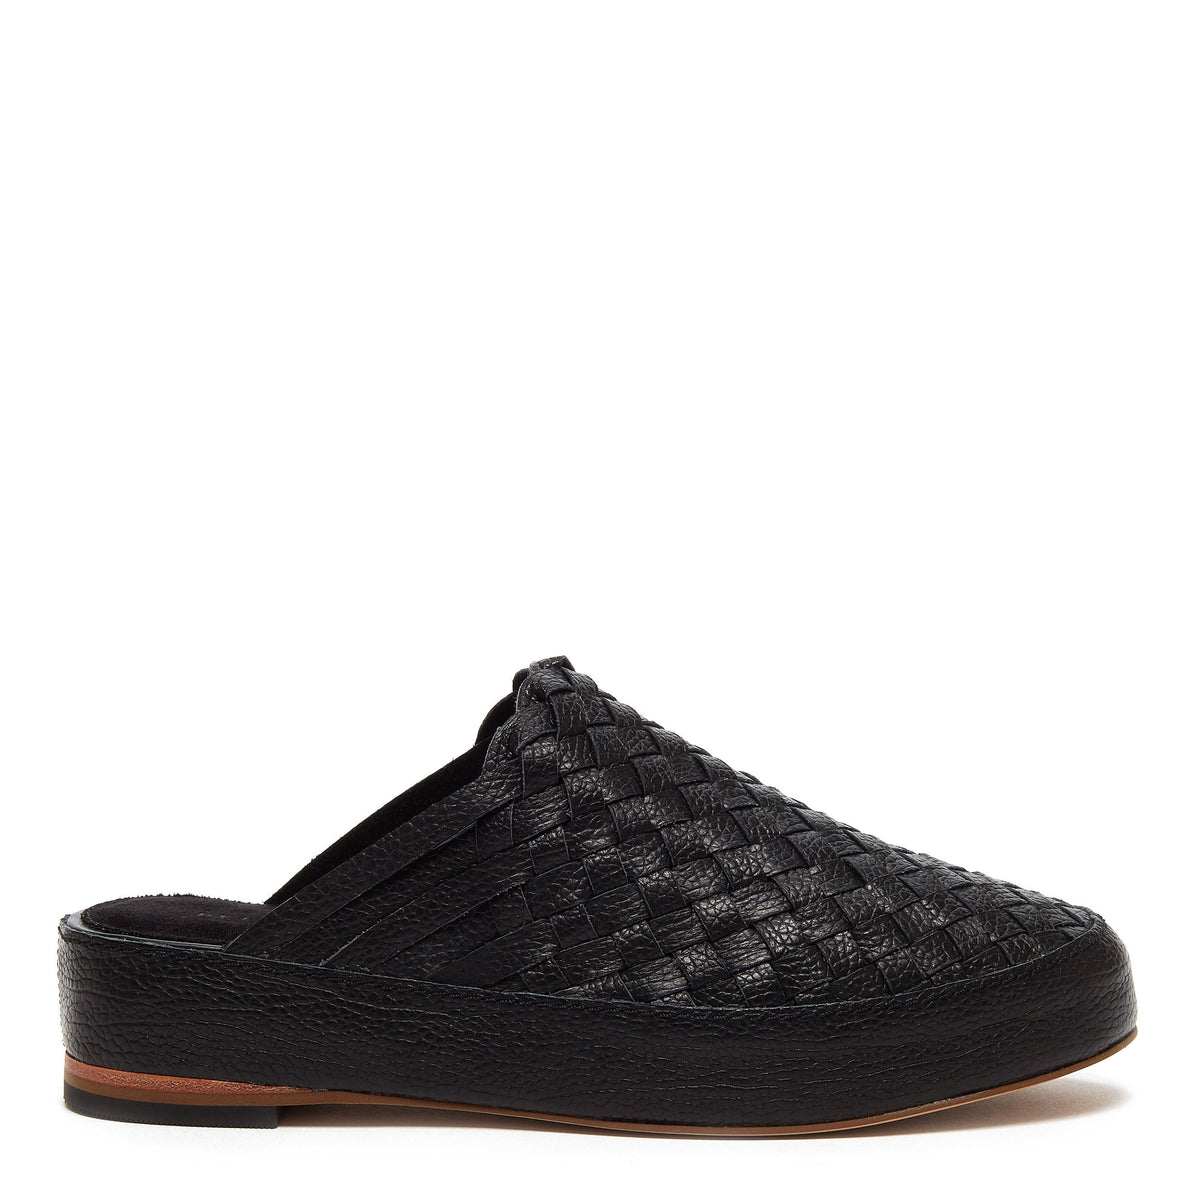 Maple Black Woven Clog